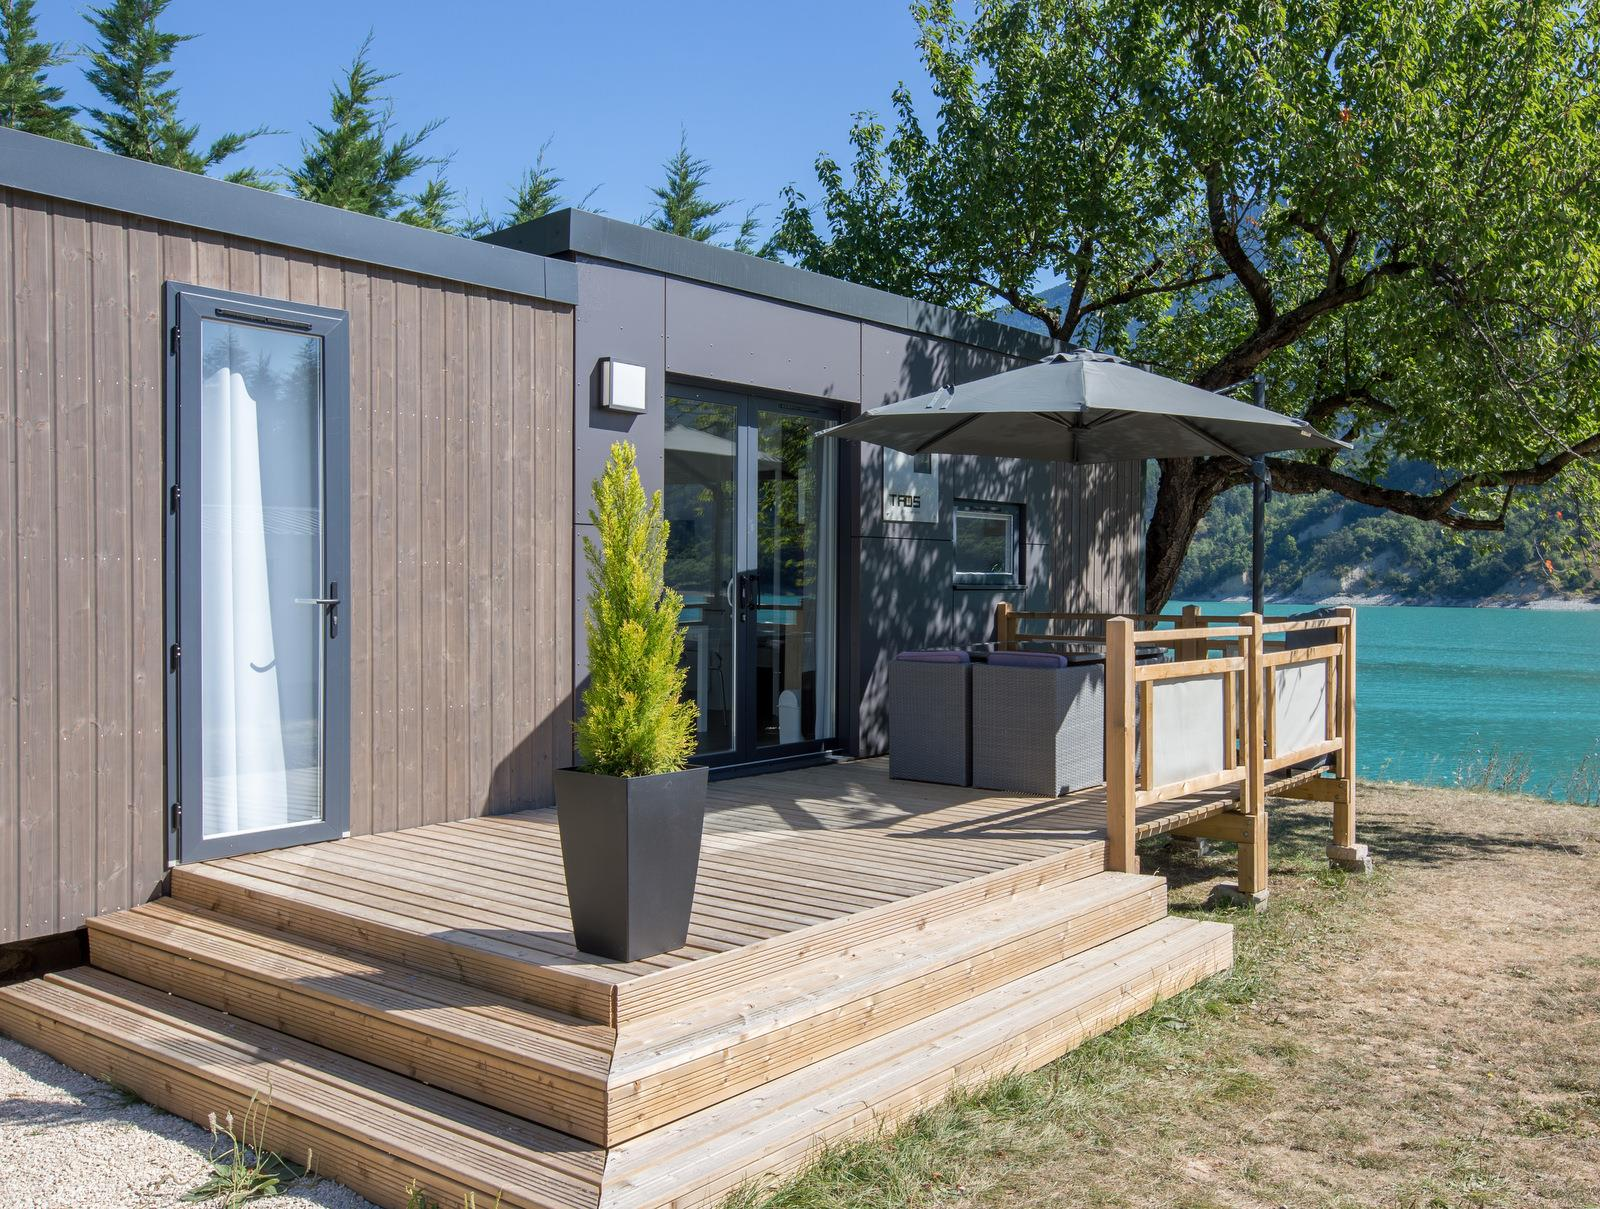 Location - Mobilhome Grand Confort Taos 2 Chambres Bord Du Lac - Camping D'Herbelon